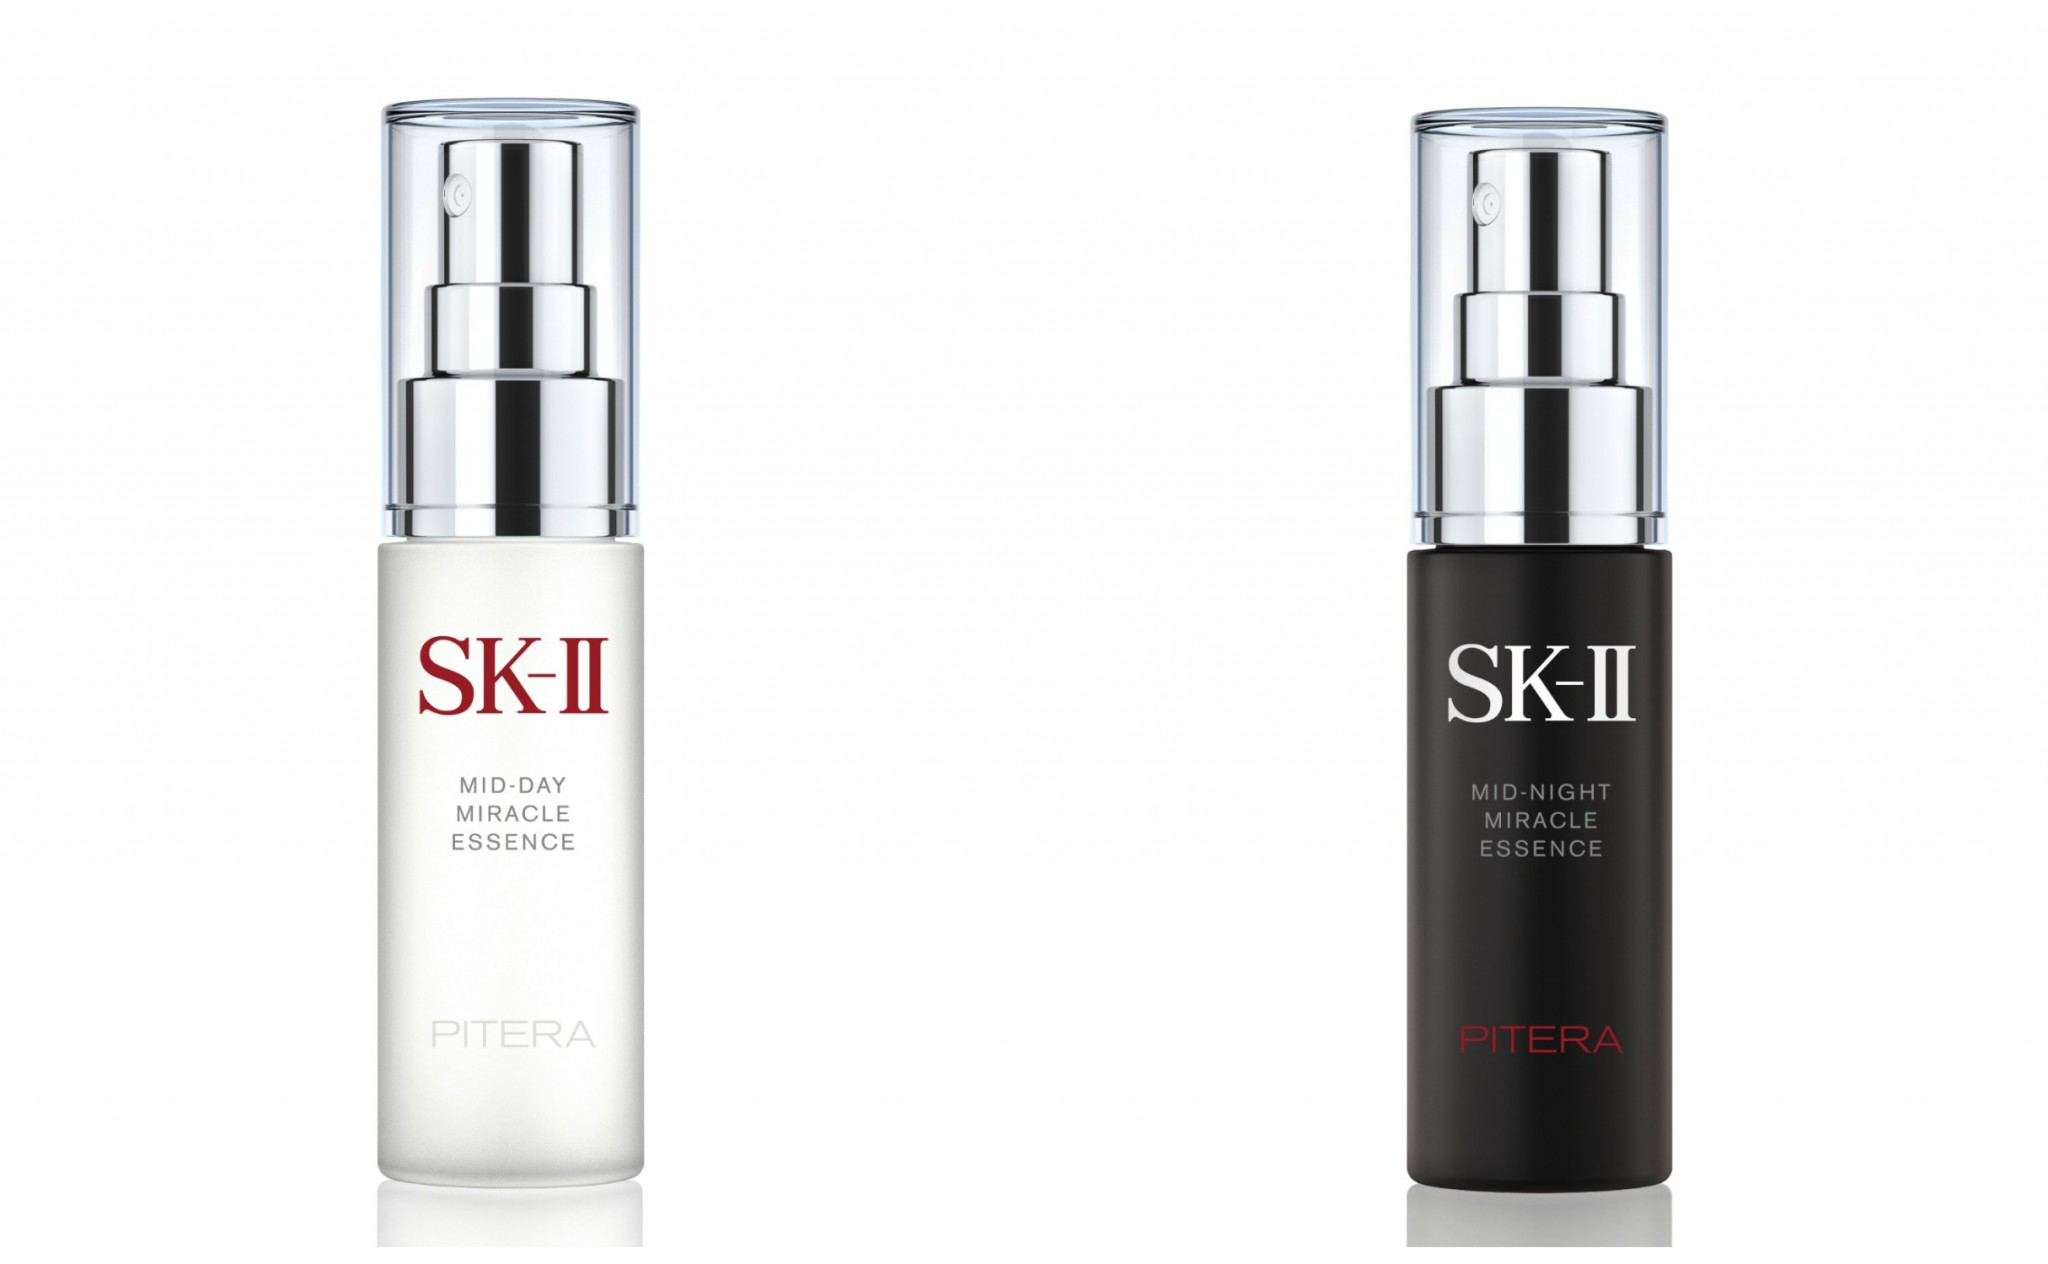 sk-ii-mid-day-miracle-essence-japan-noi-dia